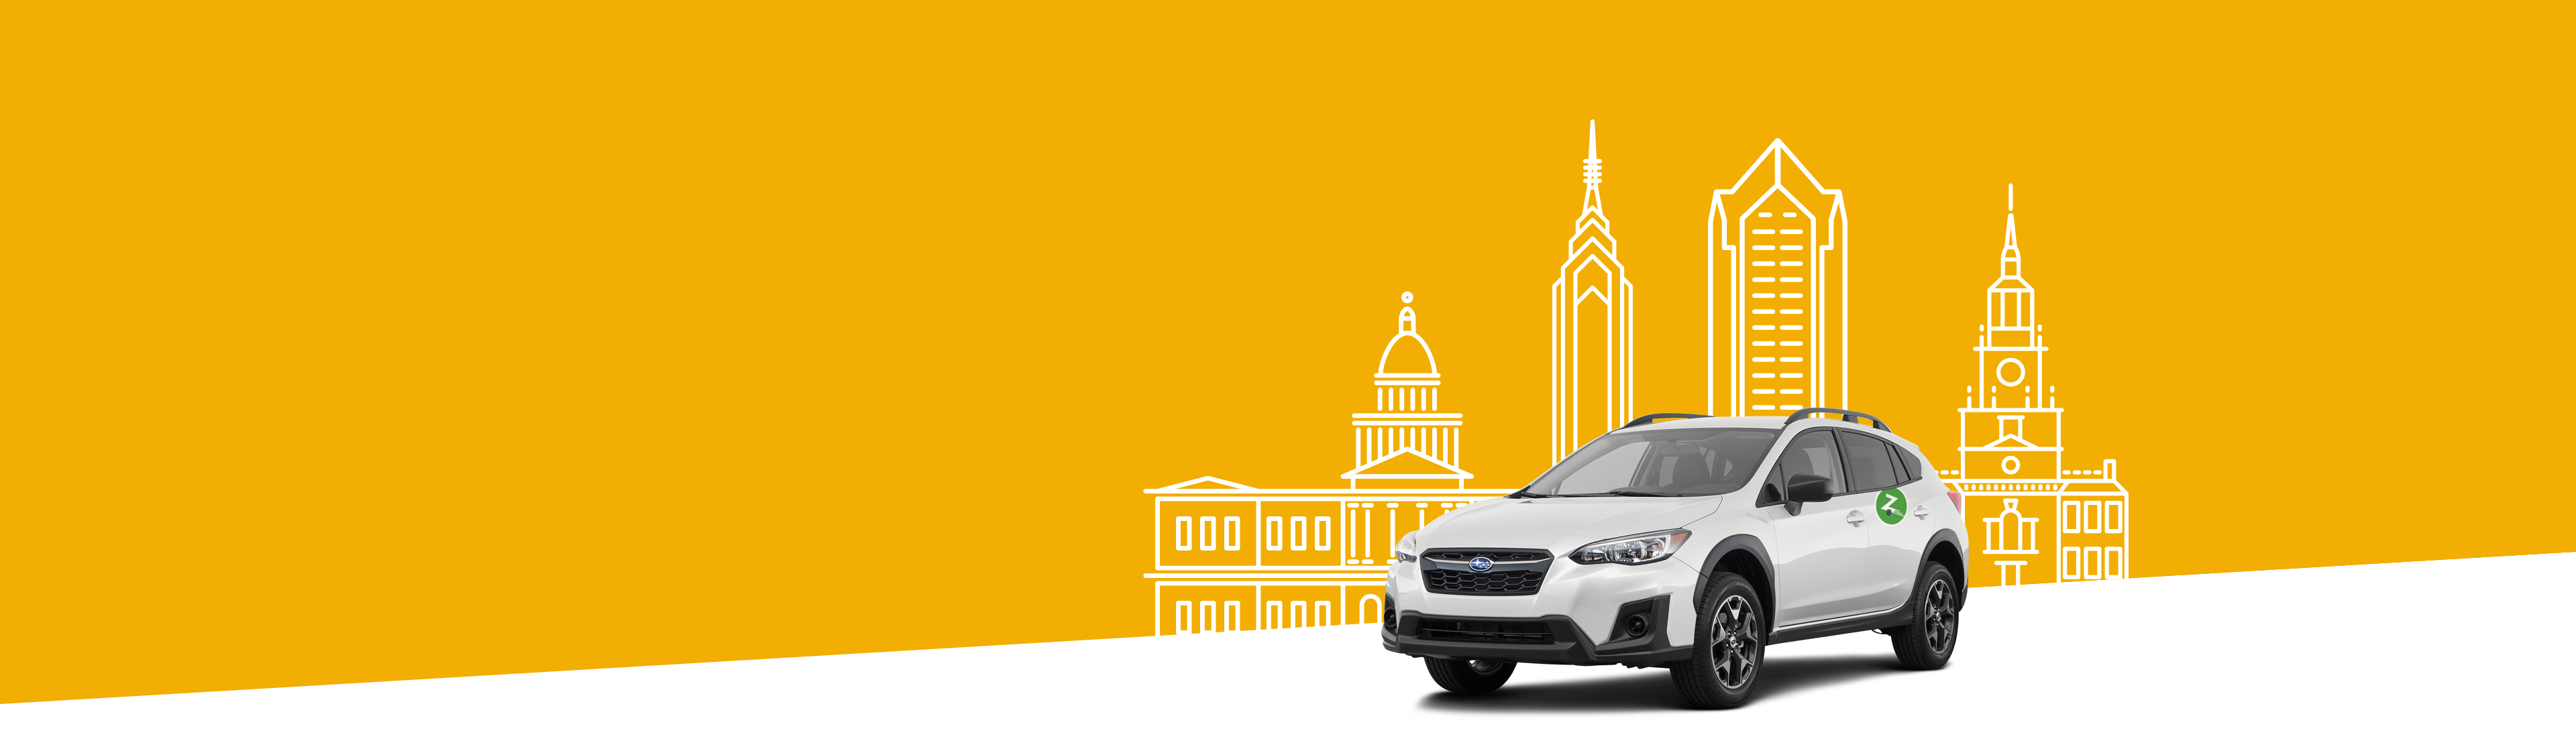 Illustrated cityscape with orange background and silver car in the front